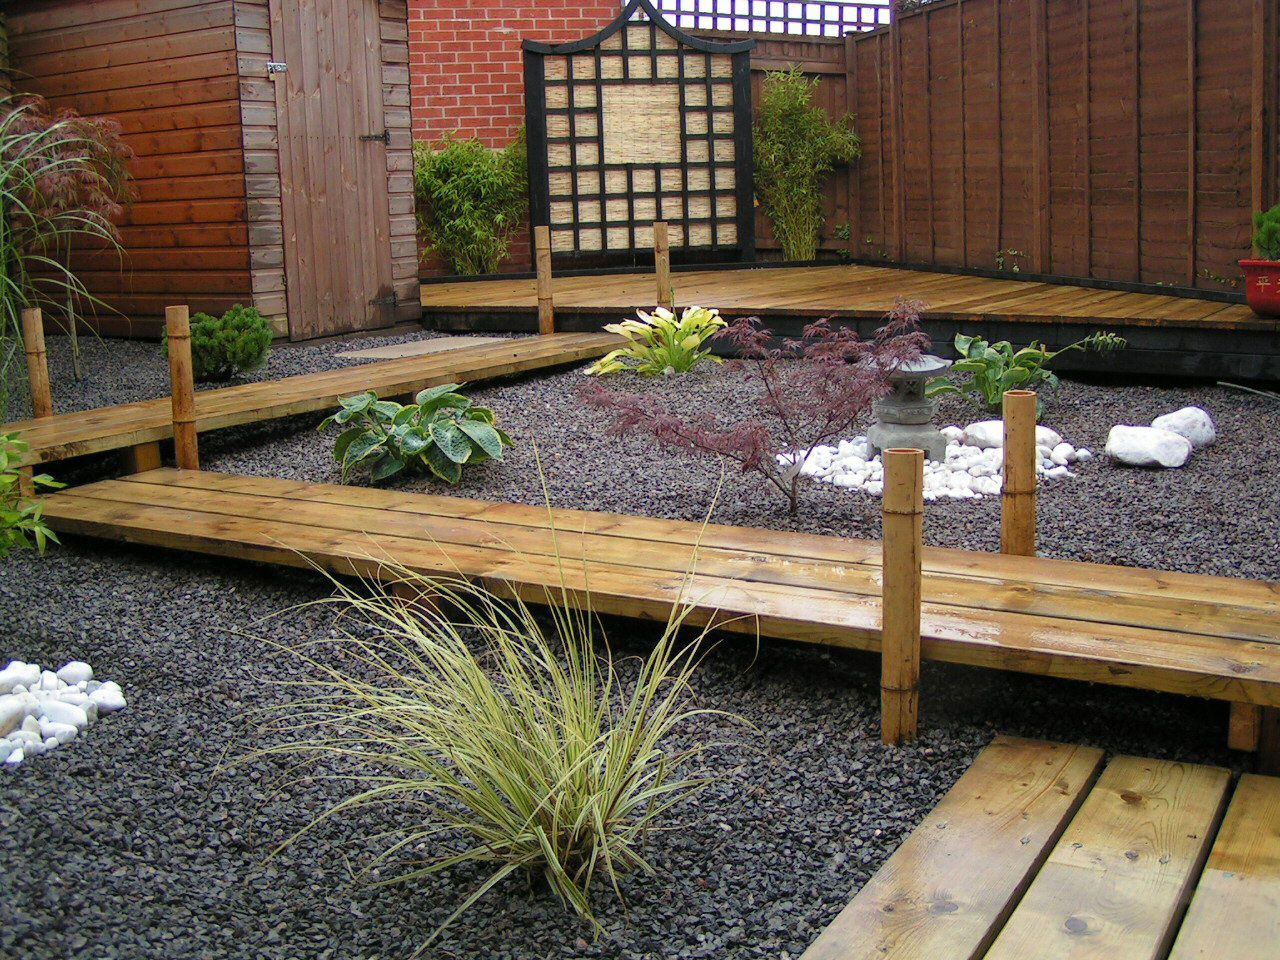 20 backyard landscapes inspired by japanese gardens - Garden Ideas Japanese